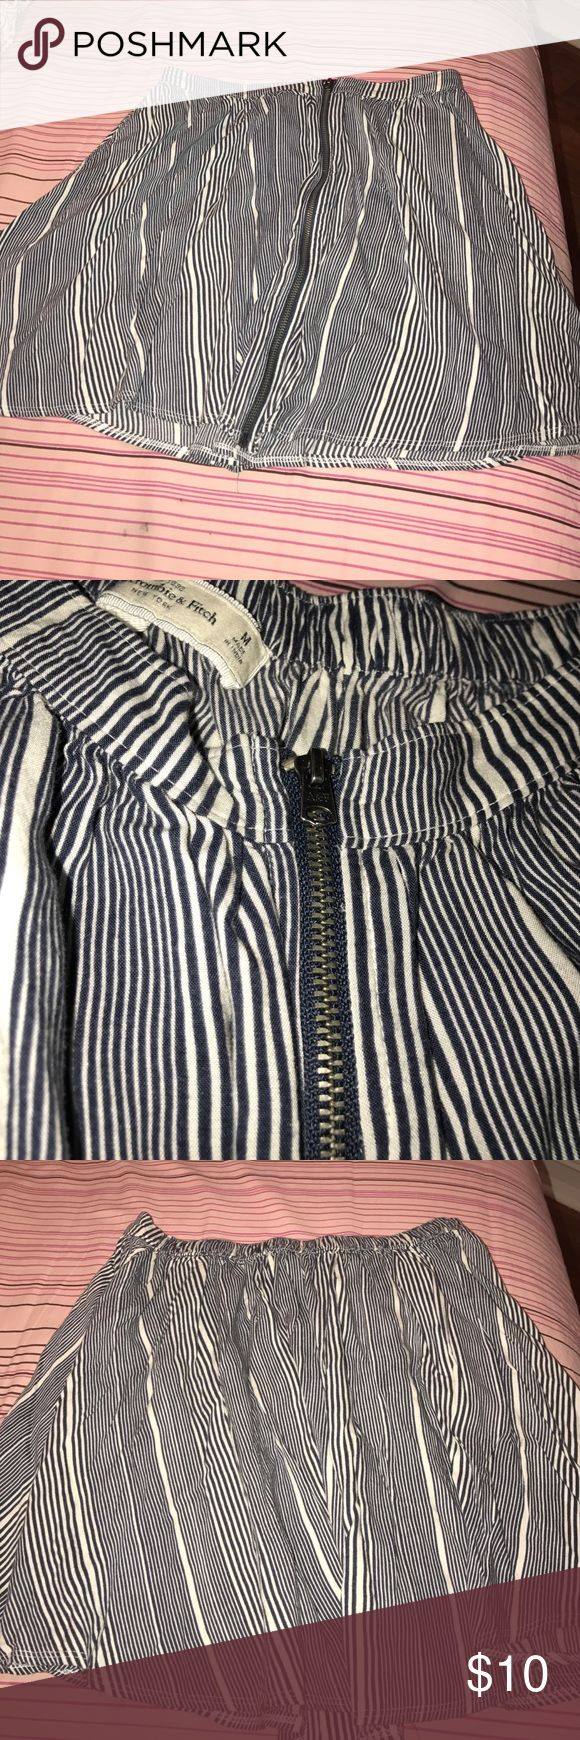 Abercrombie and fitch skirt Abercrombie and fitch stripped skirt. Zipper does work. Super cute high wasted for a shorter look, or at waist w the casual look. Lightly worn! Great condition Abercrombie & Fitch Skirts